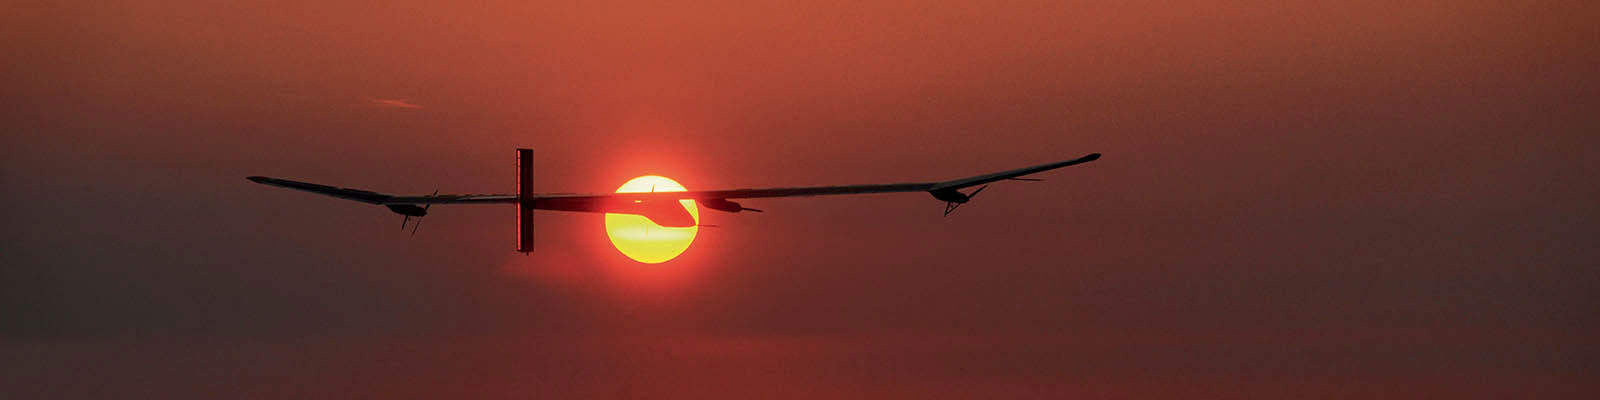 SOLAR IMPULSE HB-SIA - Background